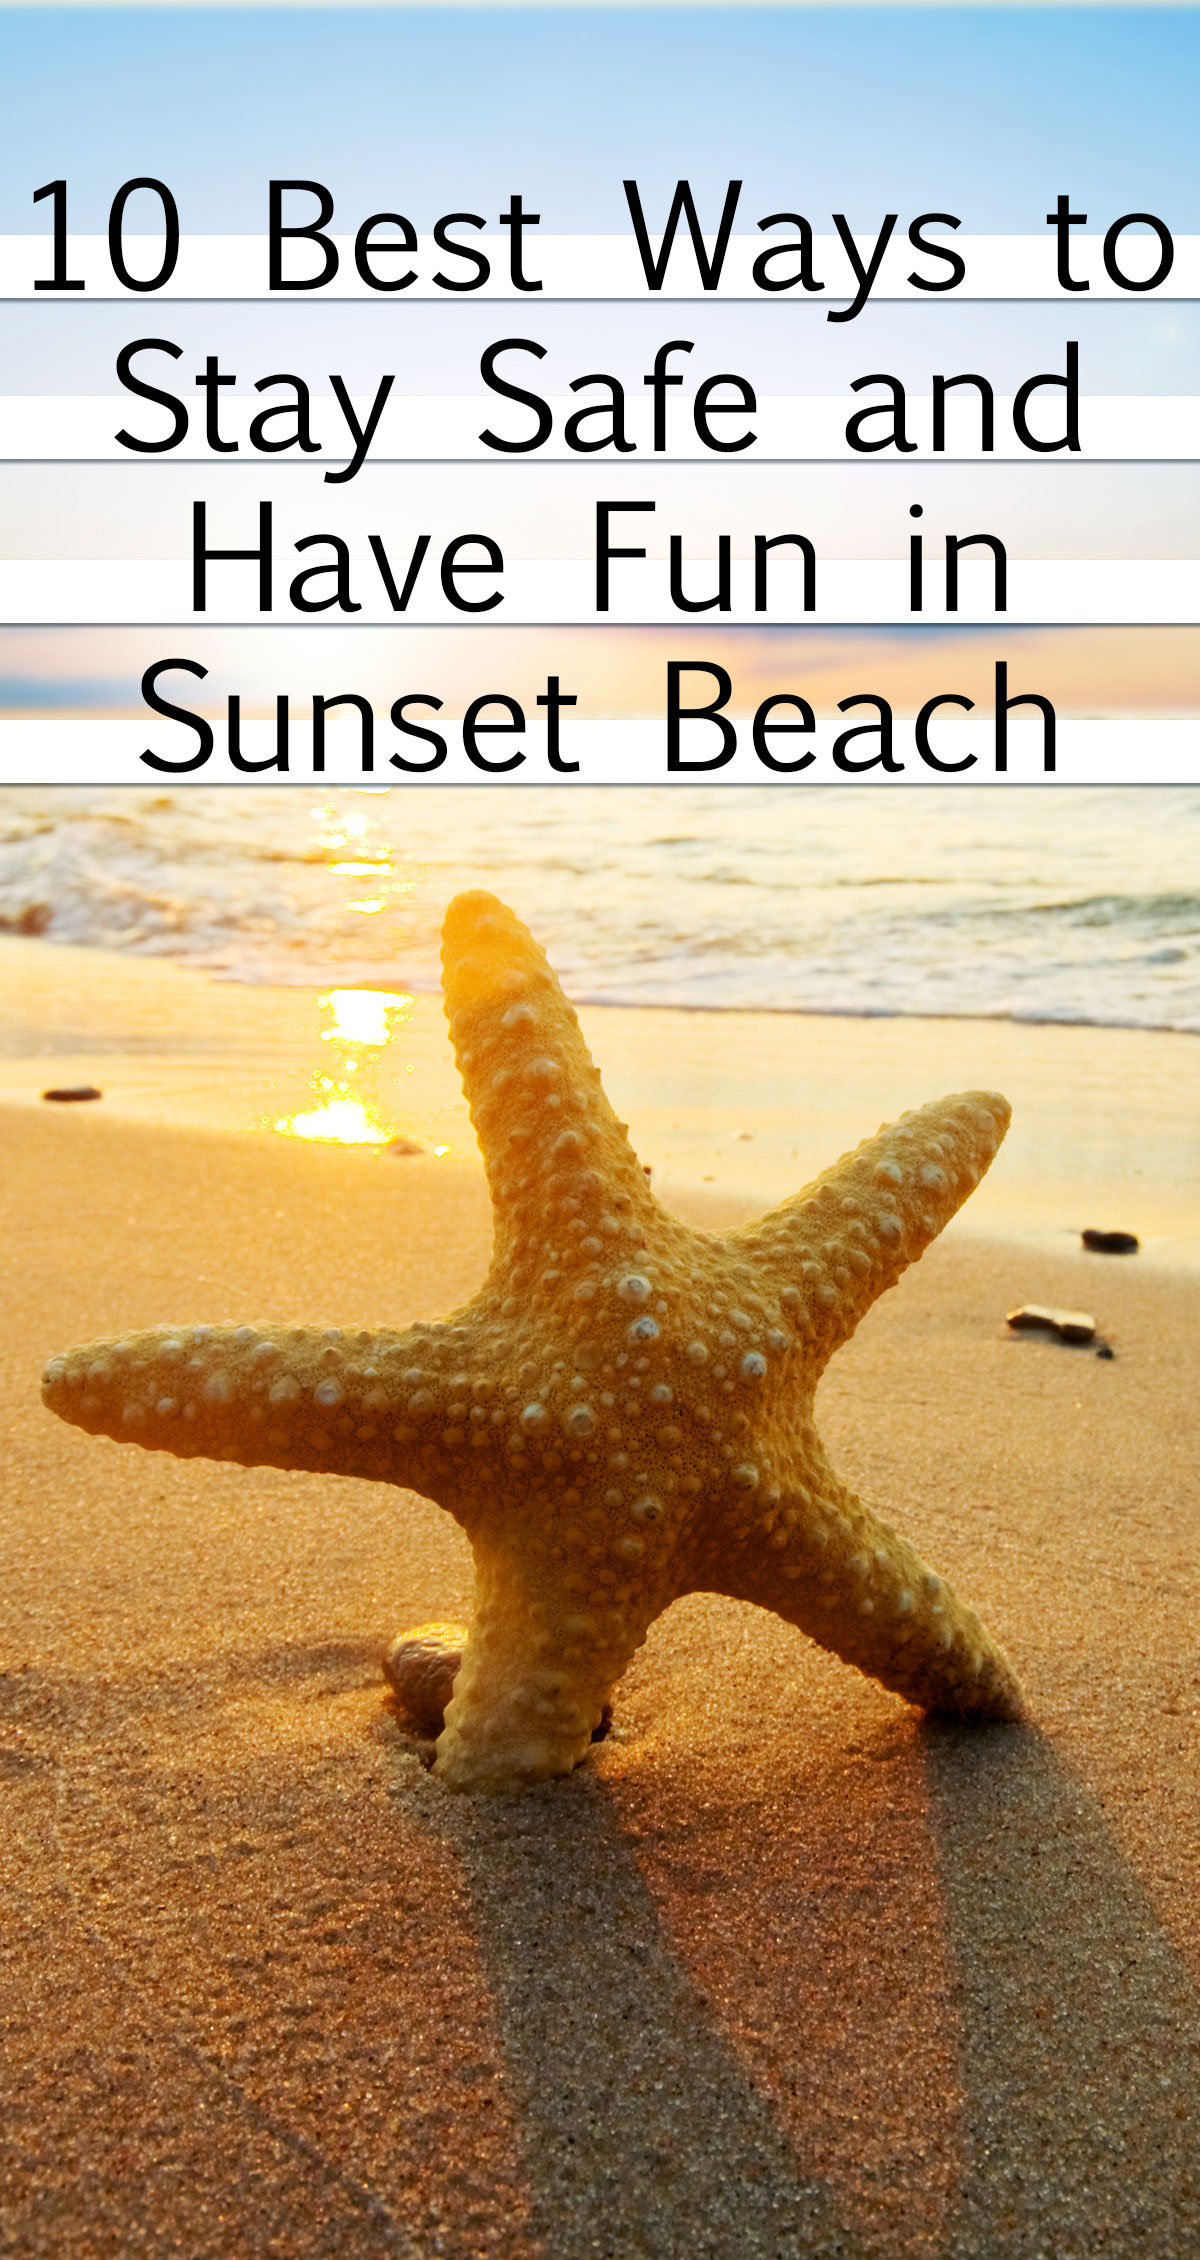 10 Best Ways to Stay Safe and Have Fun in Sunset Beach Pin